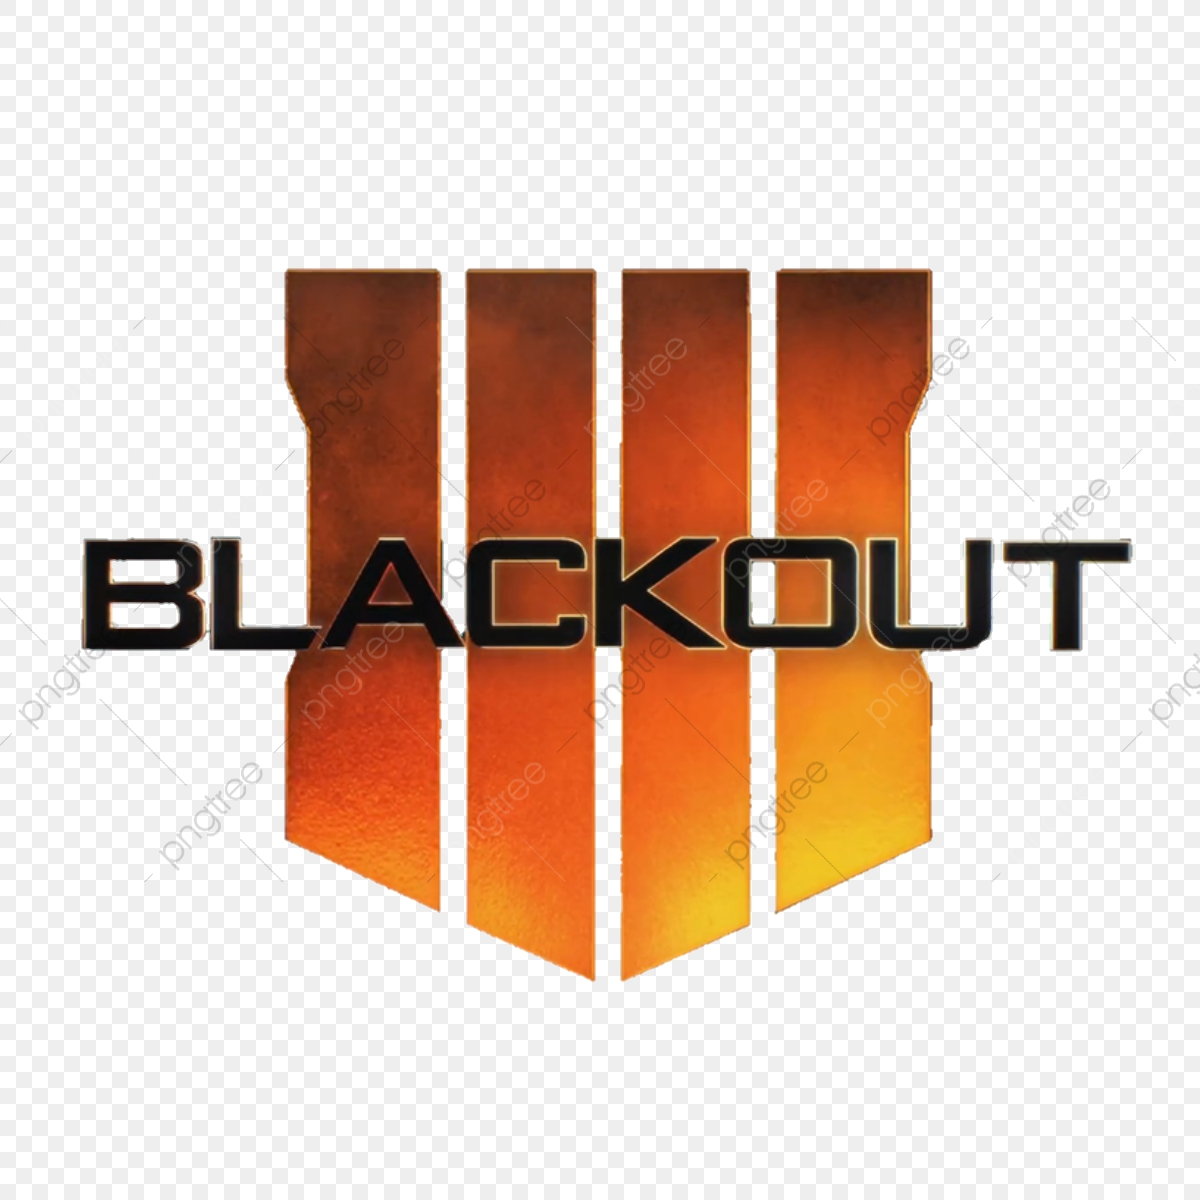 Call Of Duty Black Ops 4 Blackout Logo 736233 Png Images Pngio